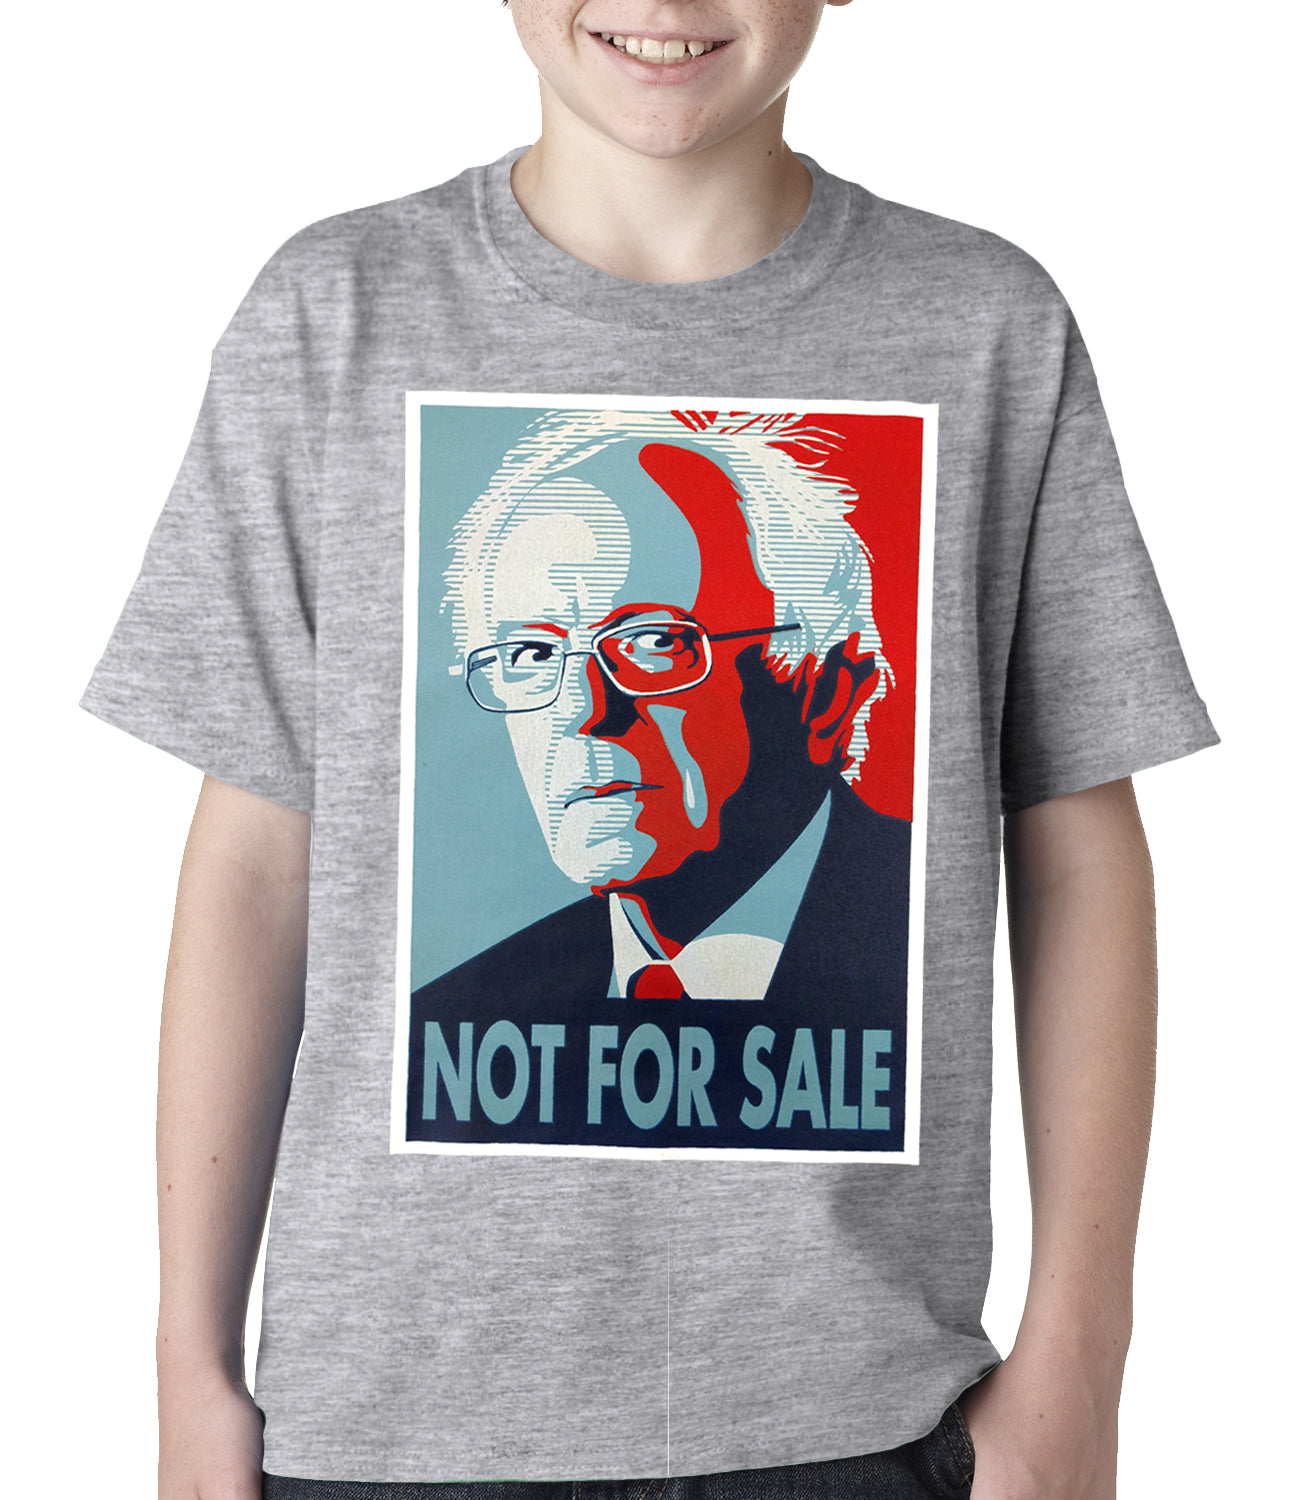 Bernie Sanders - Not For Sale - Election 2016 Kids T-shirt Grey